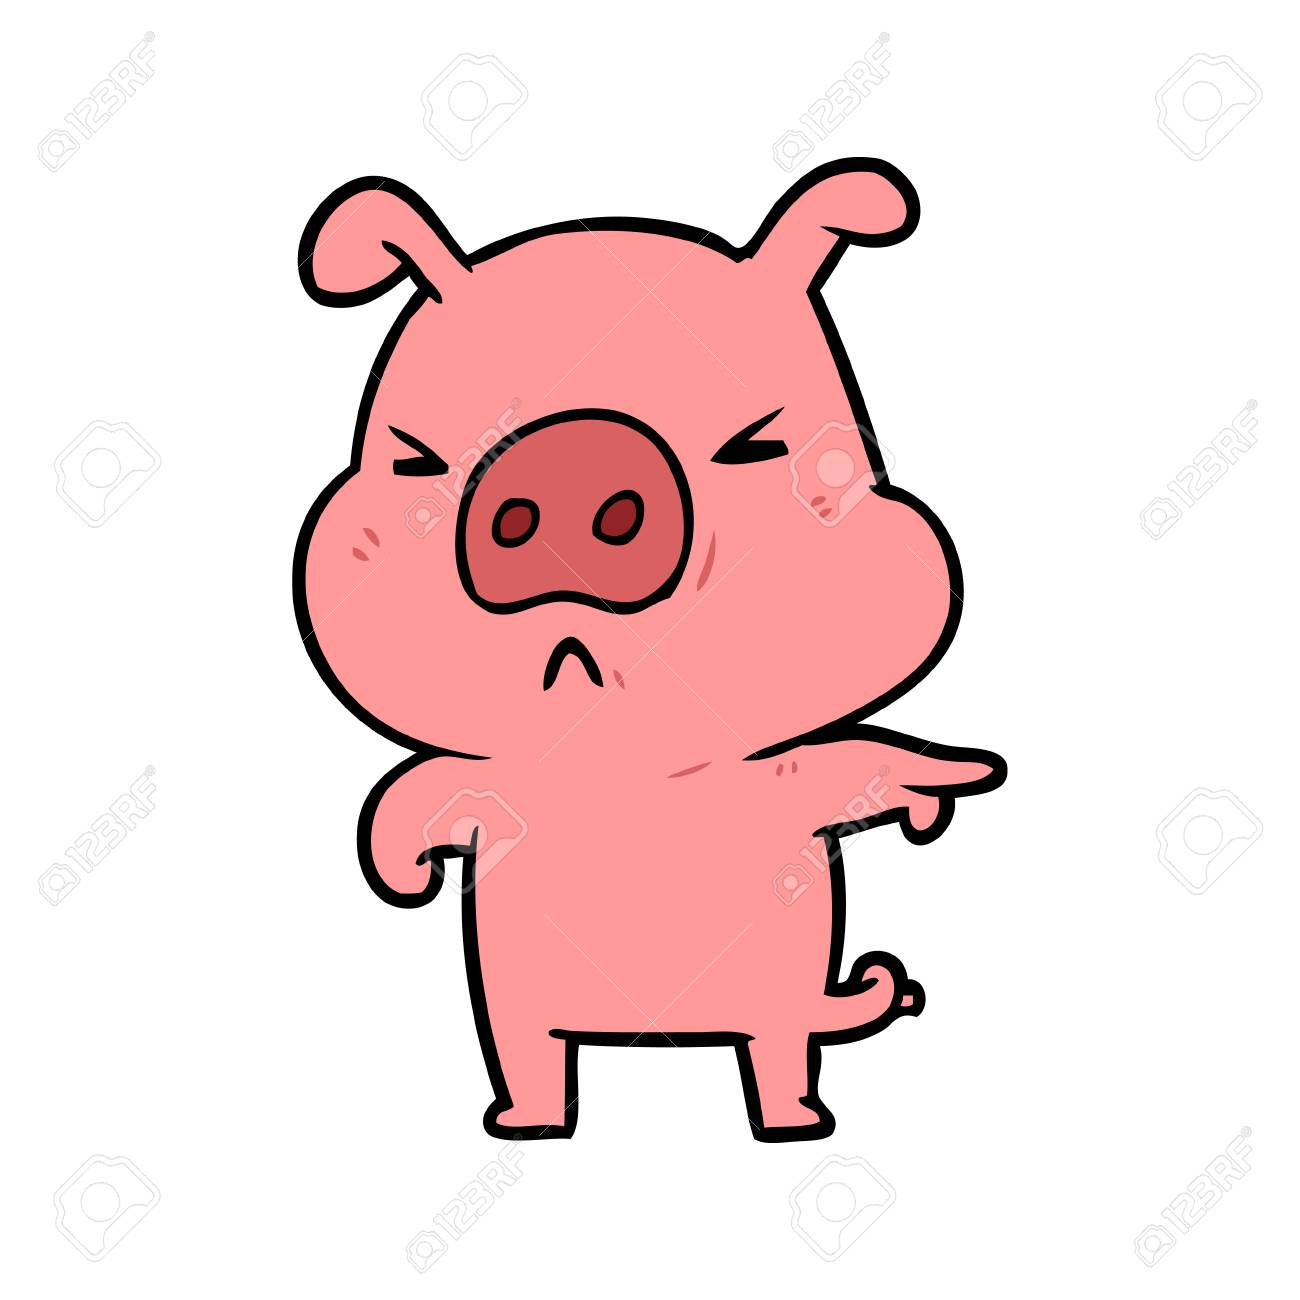 cartoon angry pig pointing.